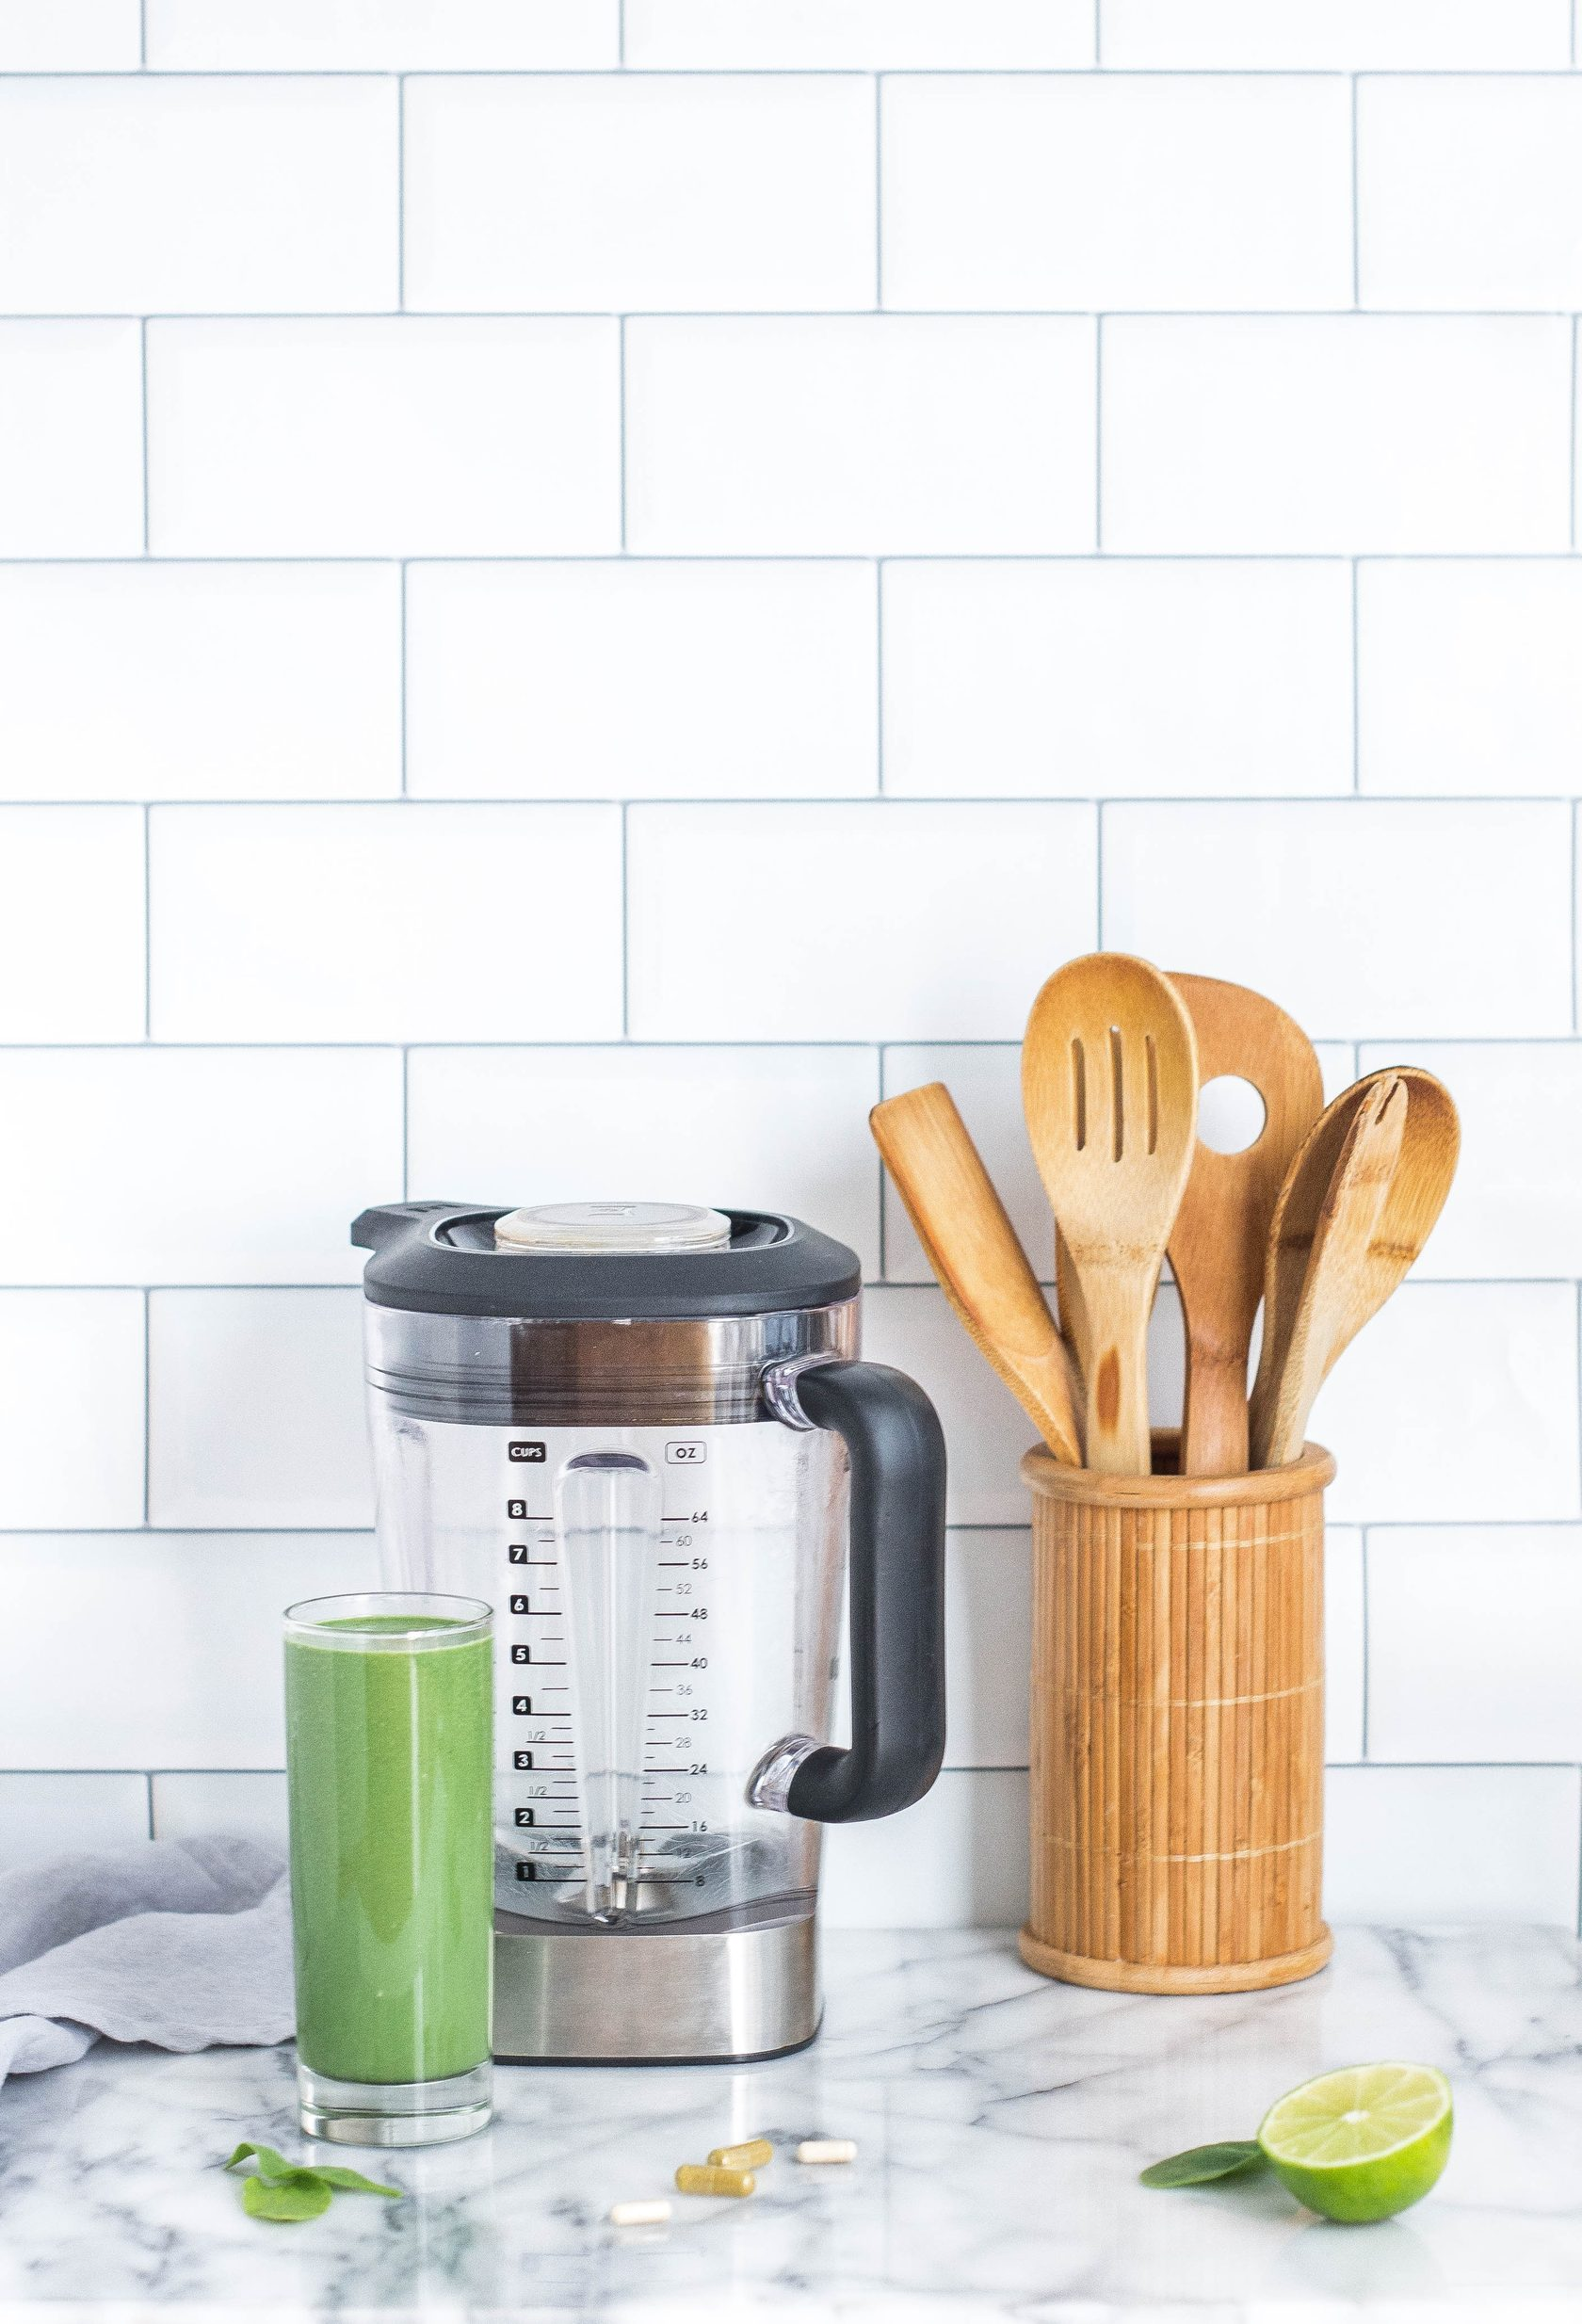 How Do You Know if You Have the Right Blender?